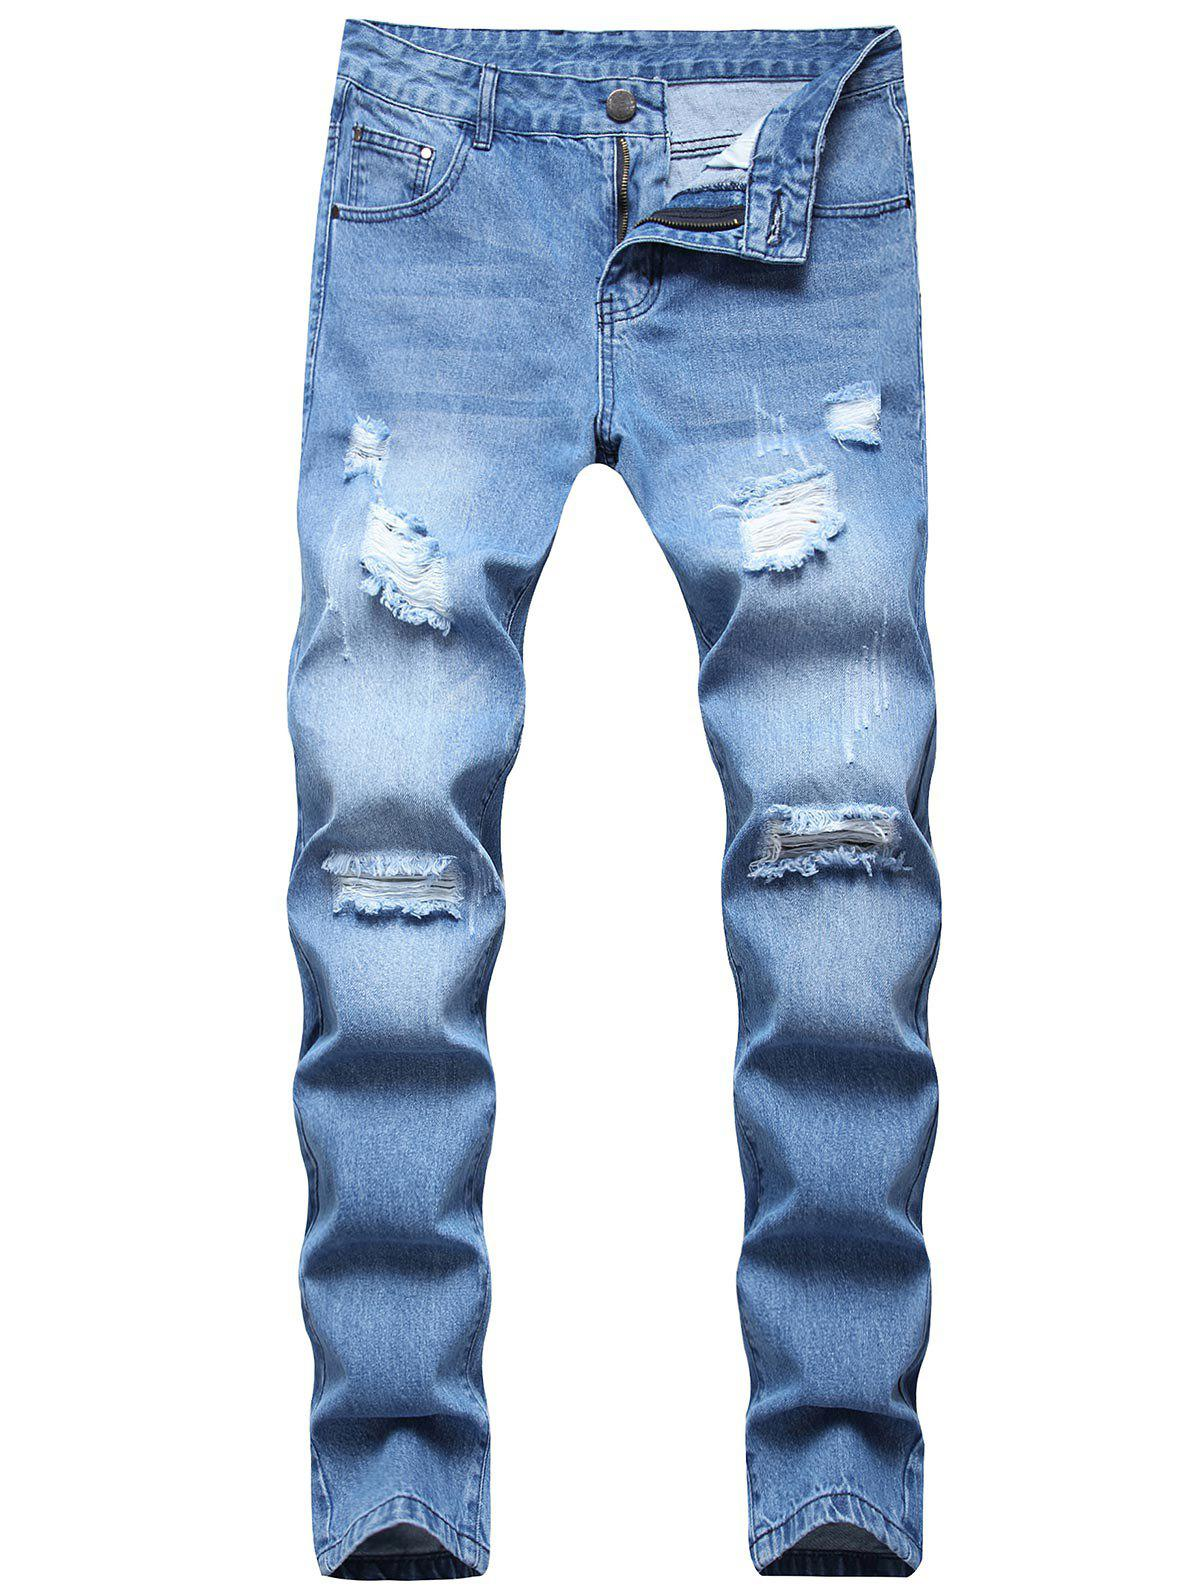 Long Destroy Wash Scratch Ripped Jeans - LIGHT BLUE 40